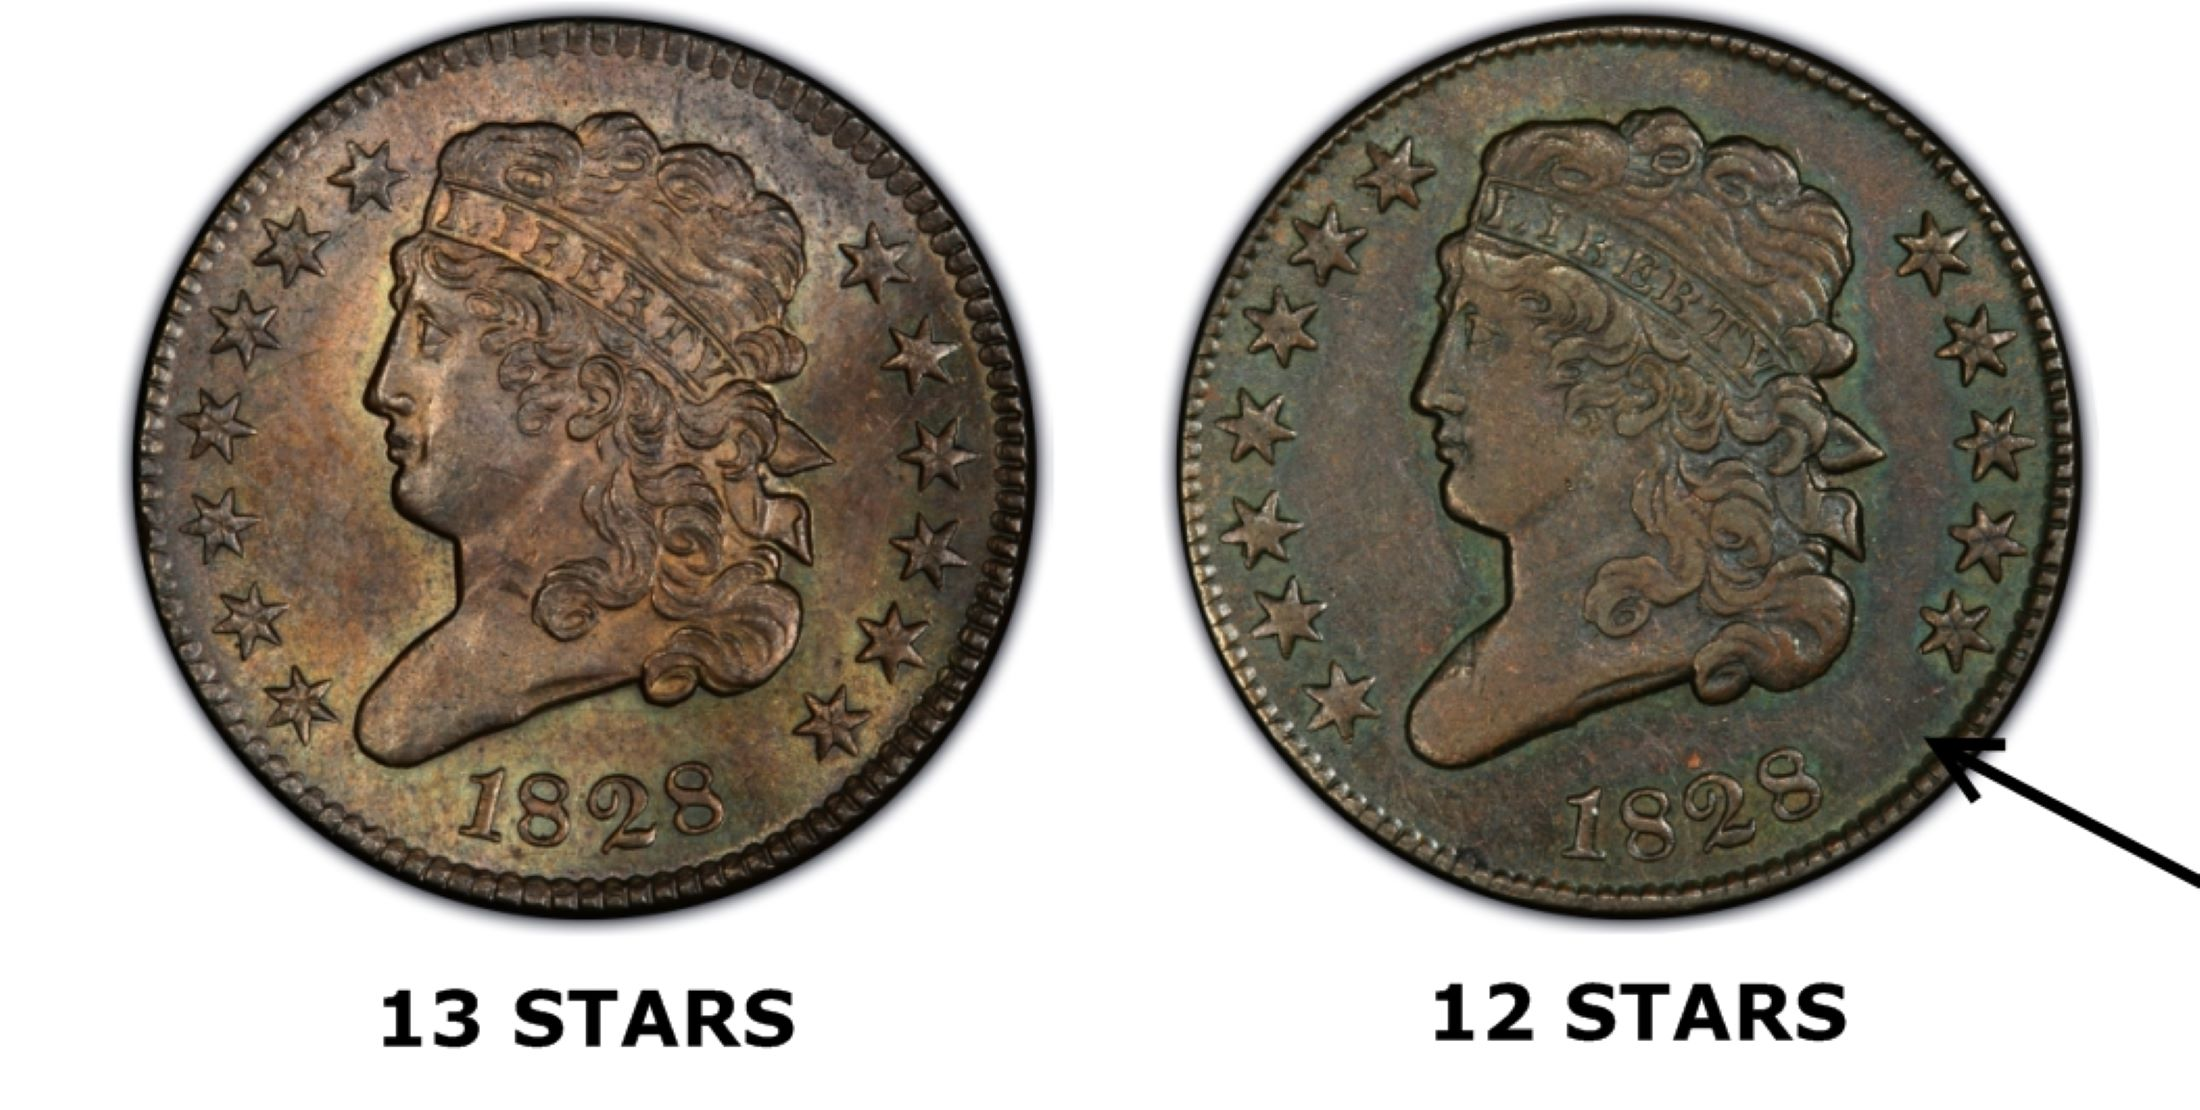 1828 12c 12 stars bn regular strike pcgs coinfacts 13 vs 12 stars publicscrutiny Image collections